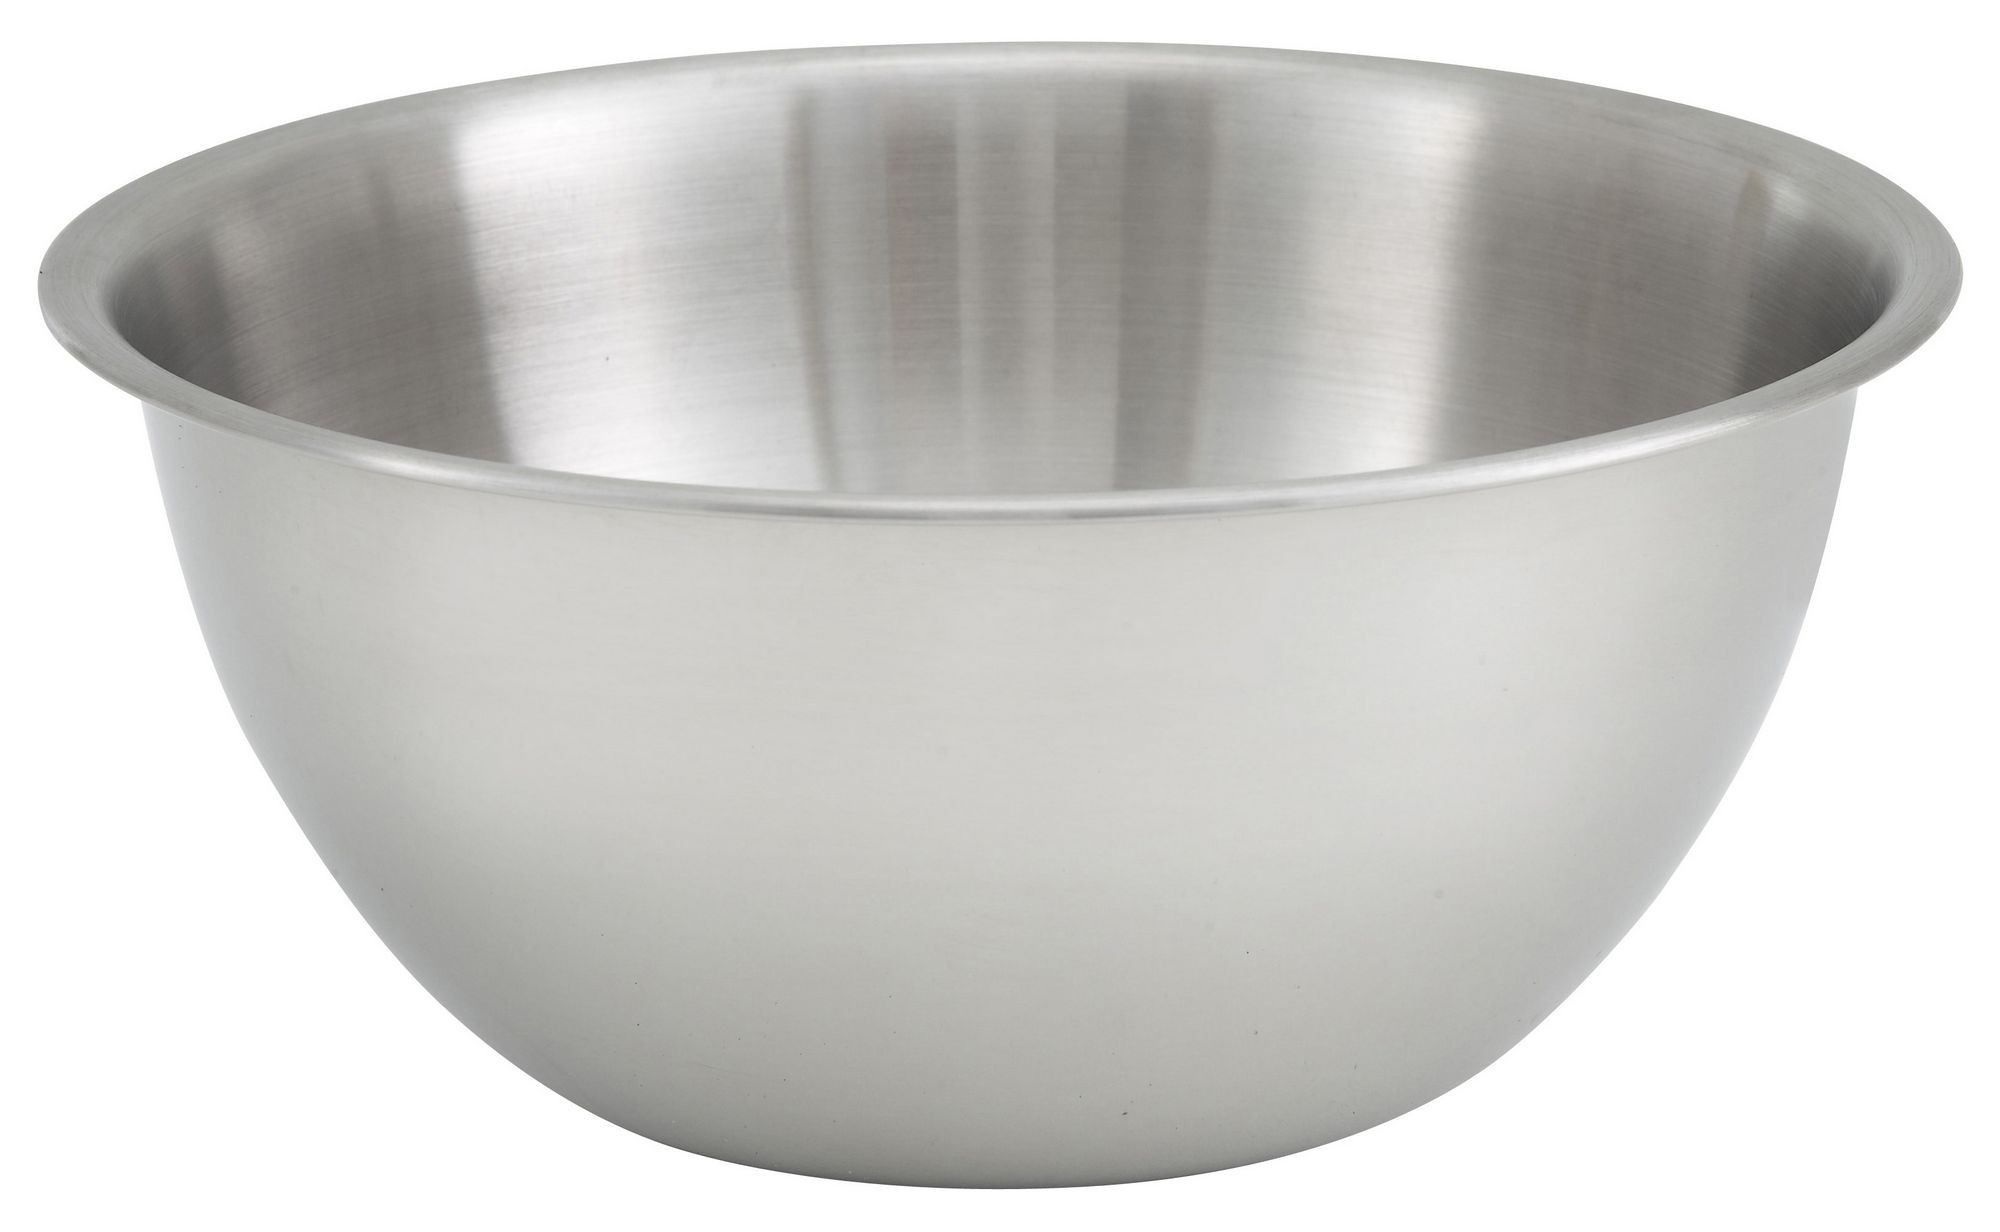 Winco MXBH-300 Heavy Duty Stainless Steel 3 Qt. Mixing Bowl